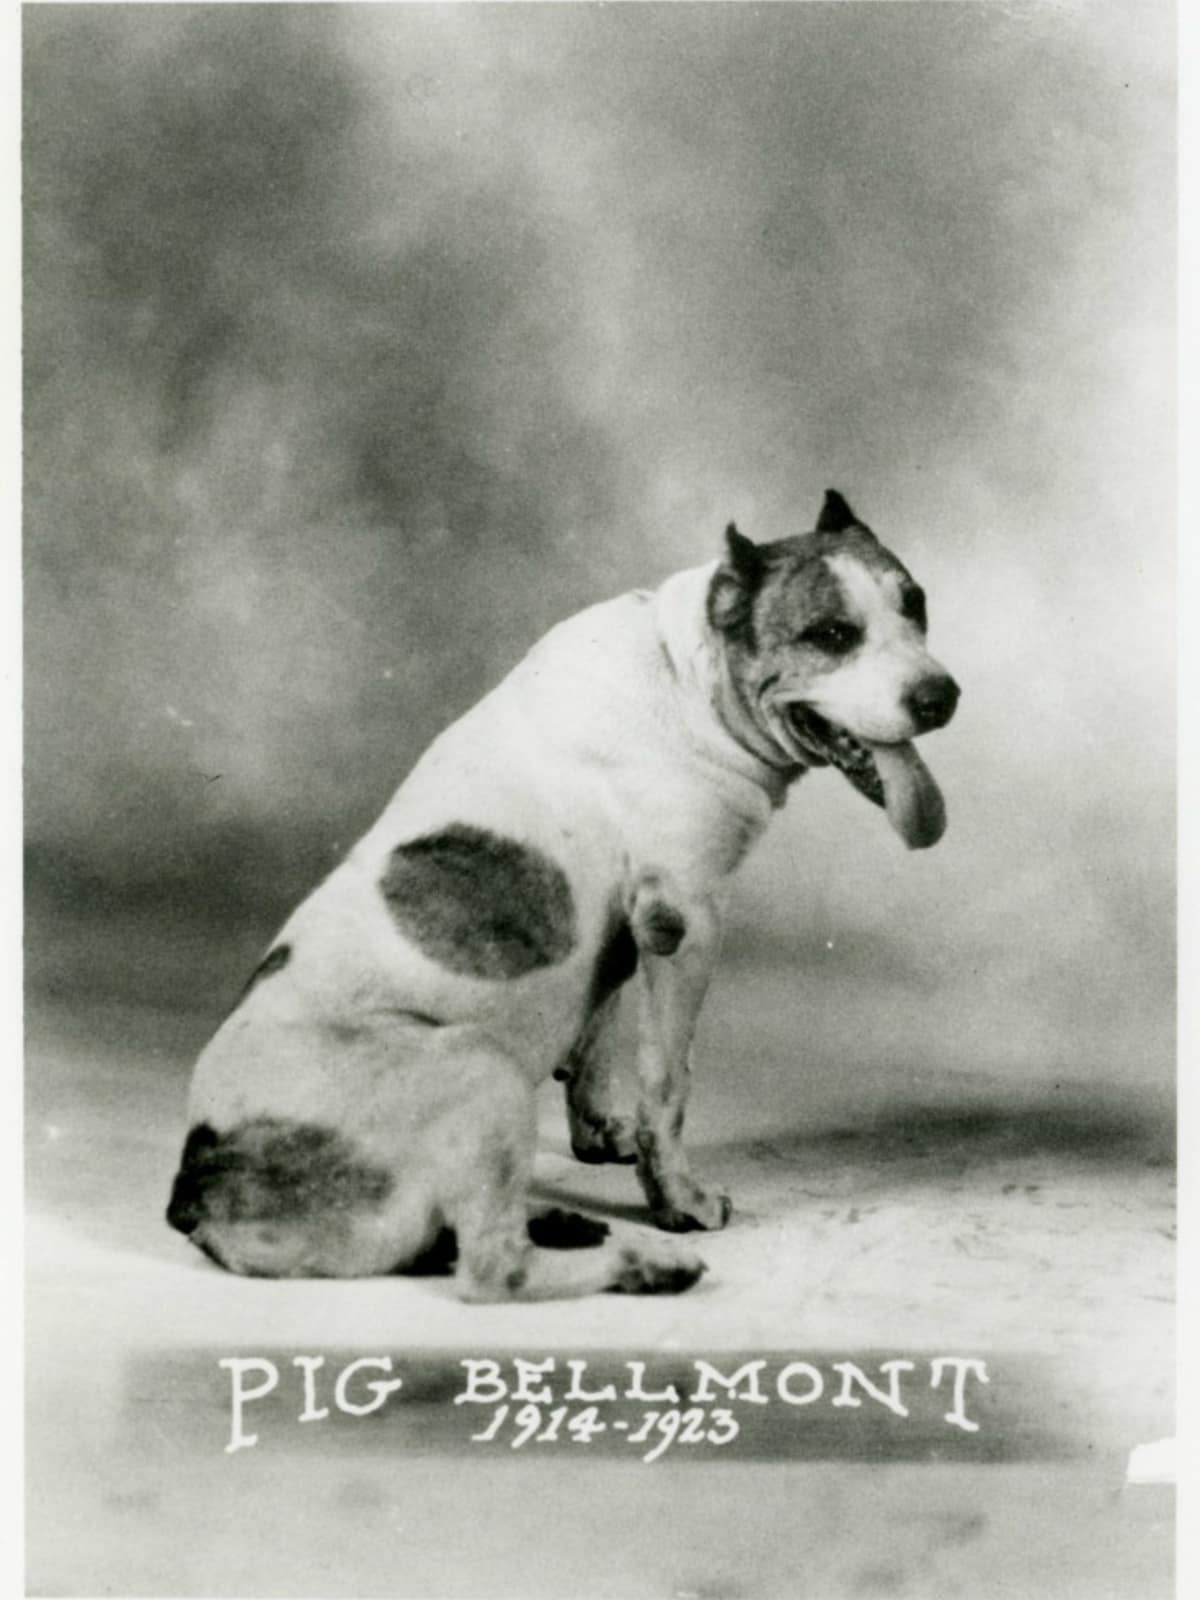 Pig Bellmont University of Texas first mascot